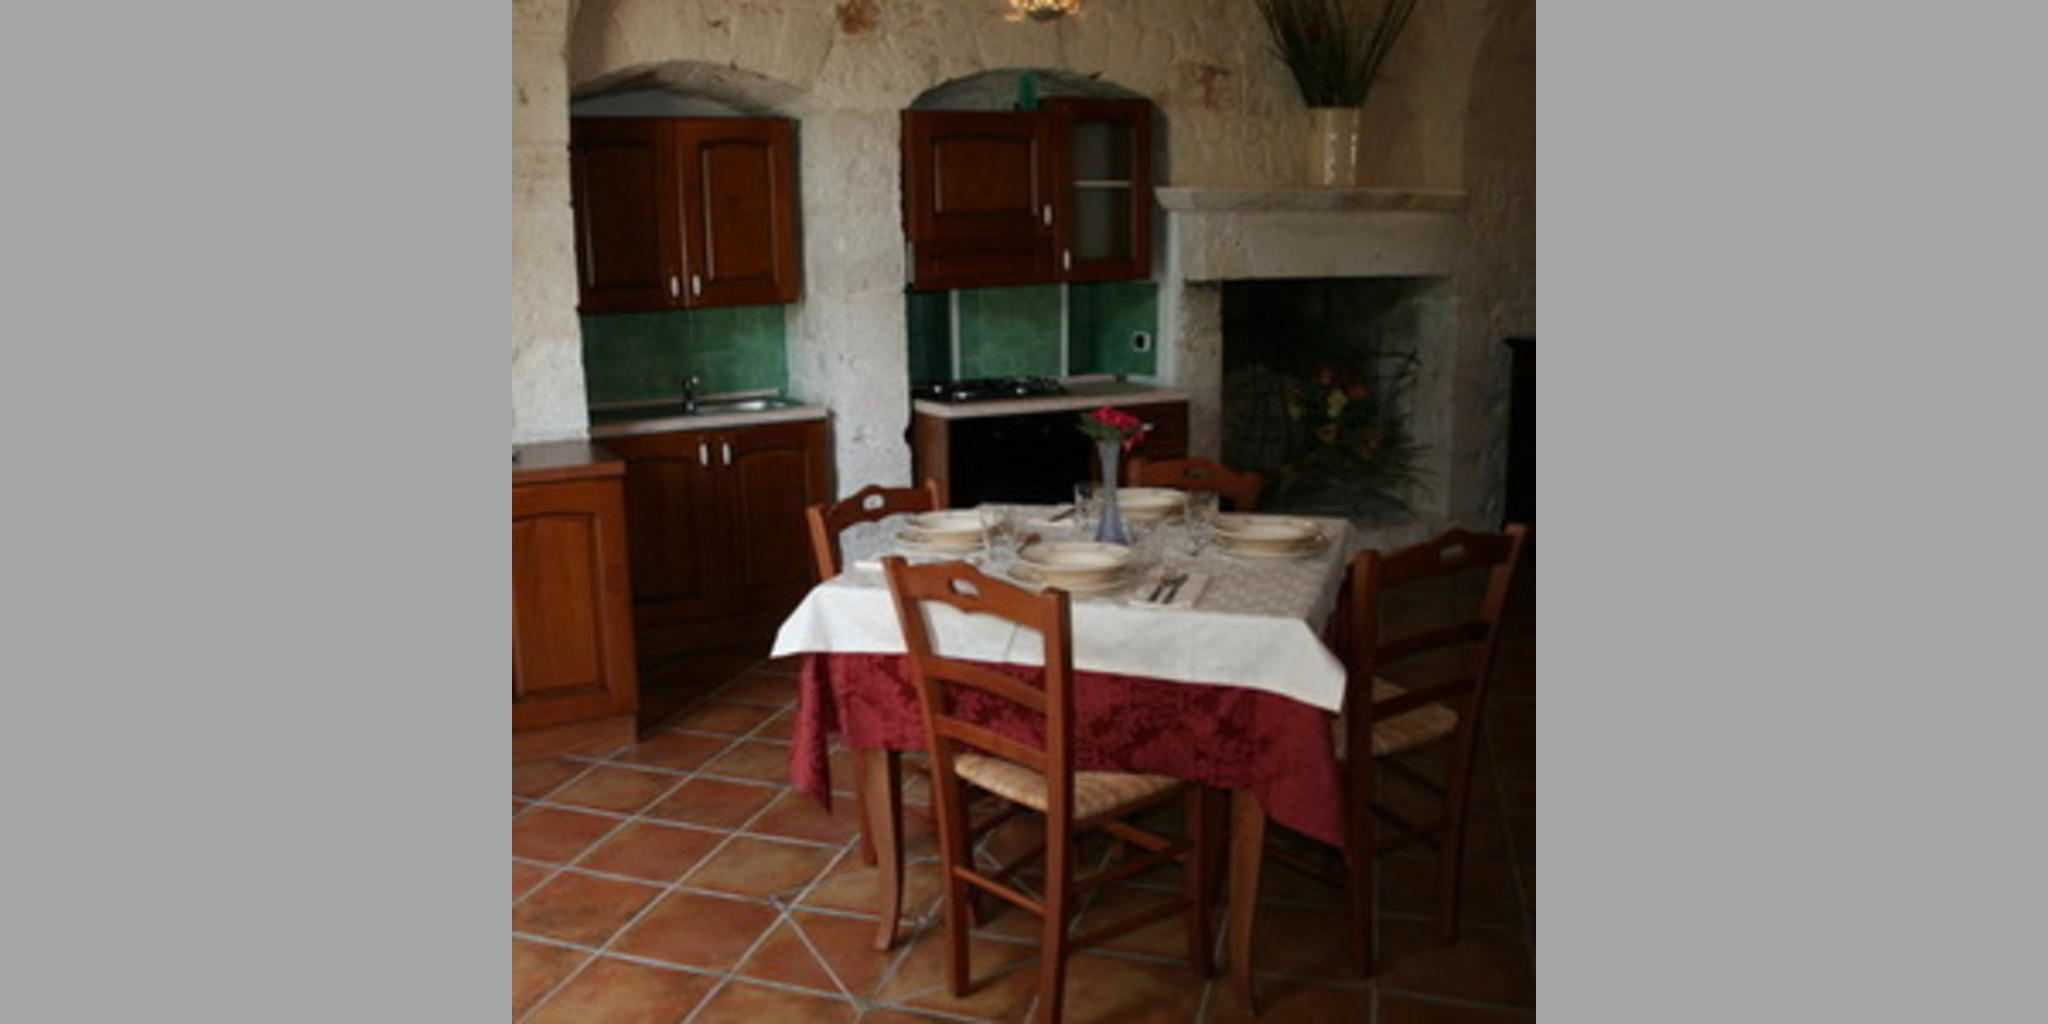 Bed & Breakfast Castellana Grotte - Castellana Grotte A